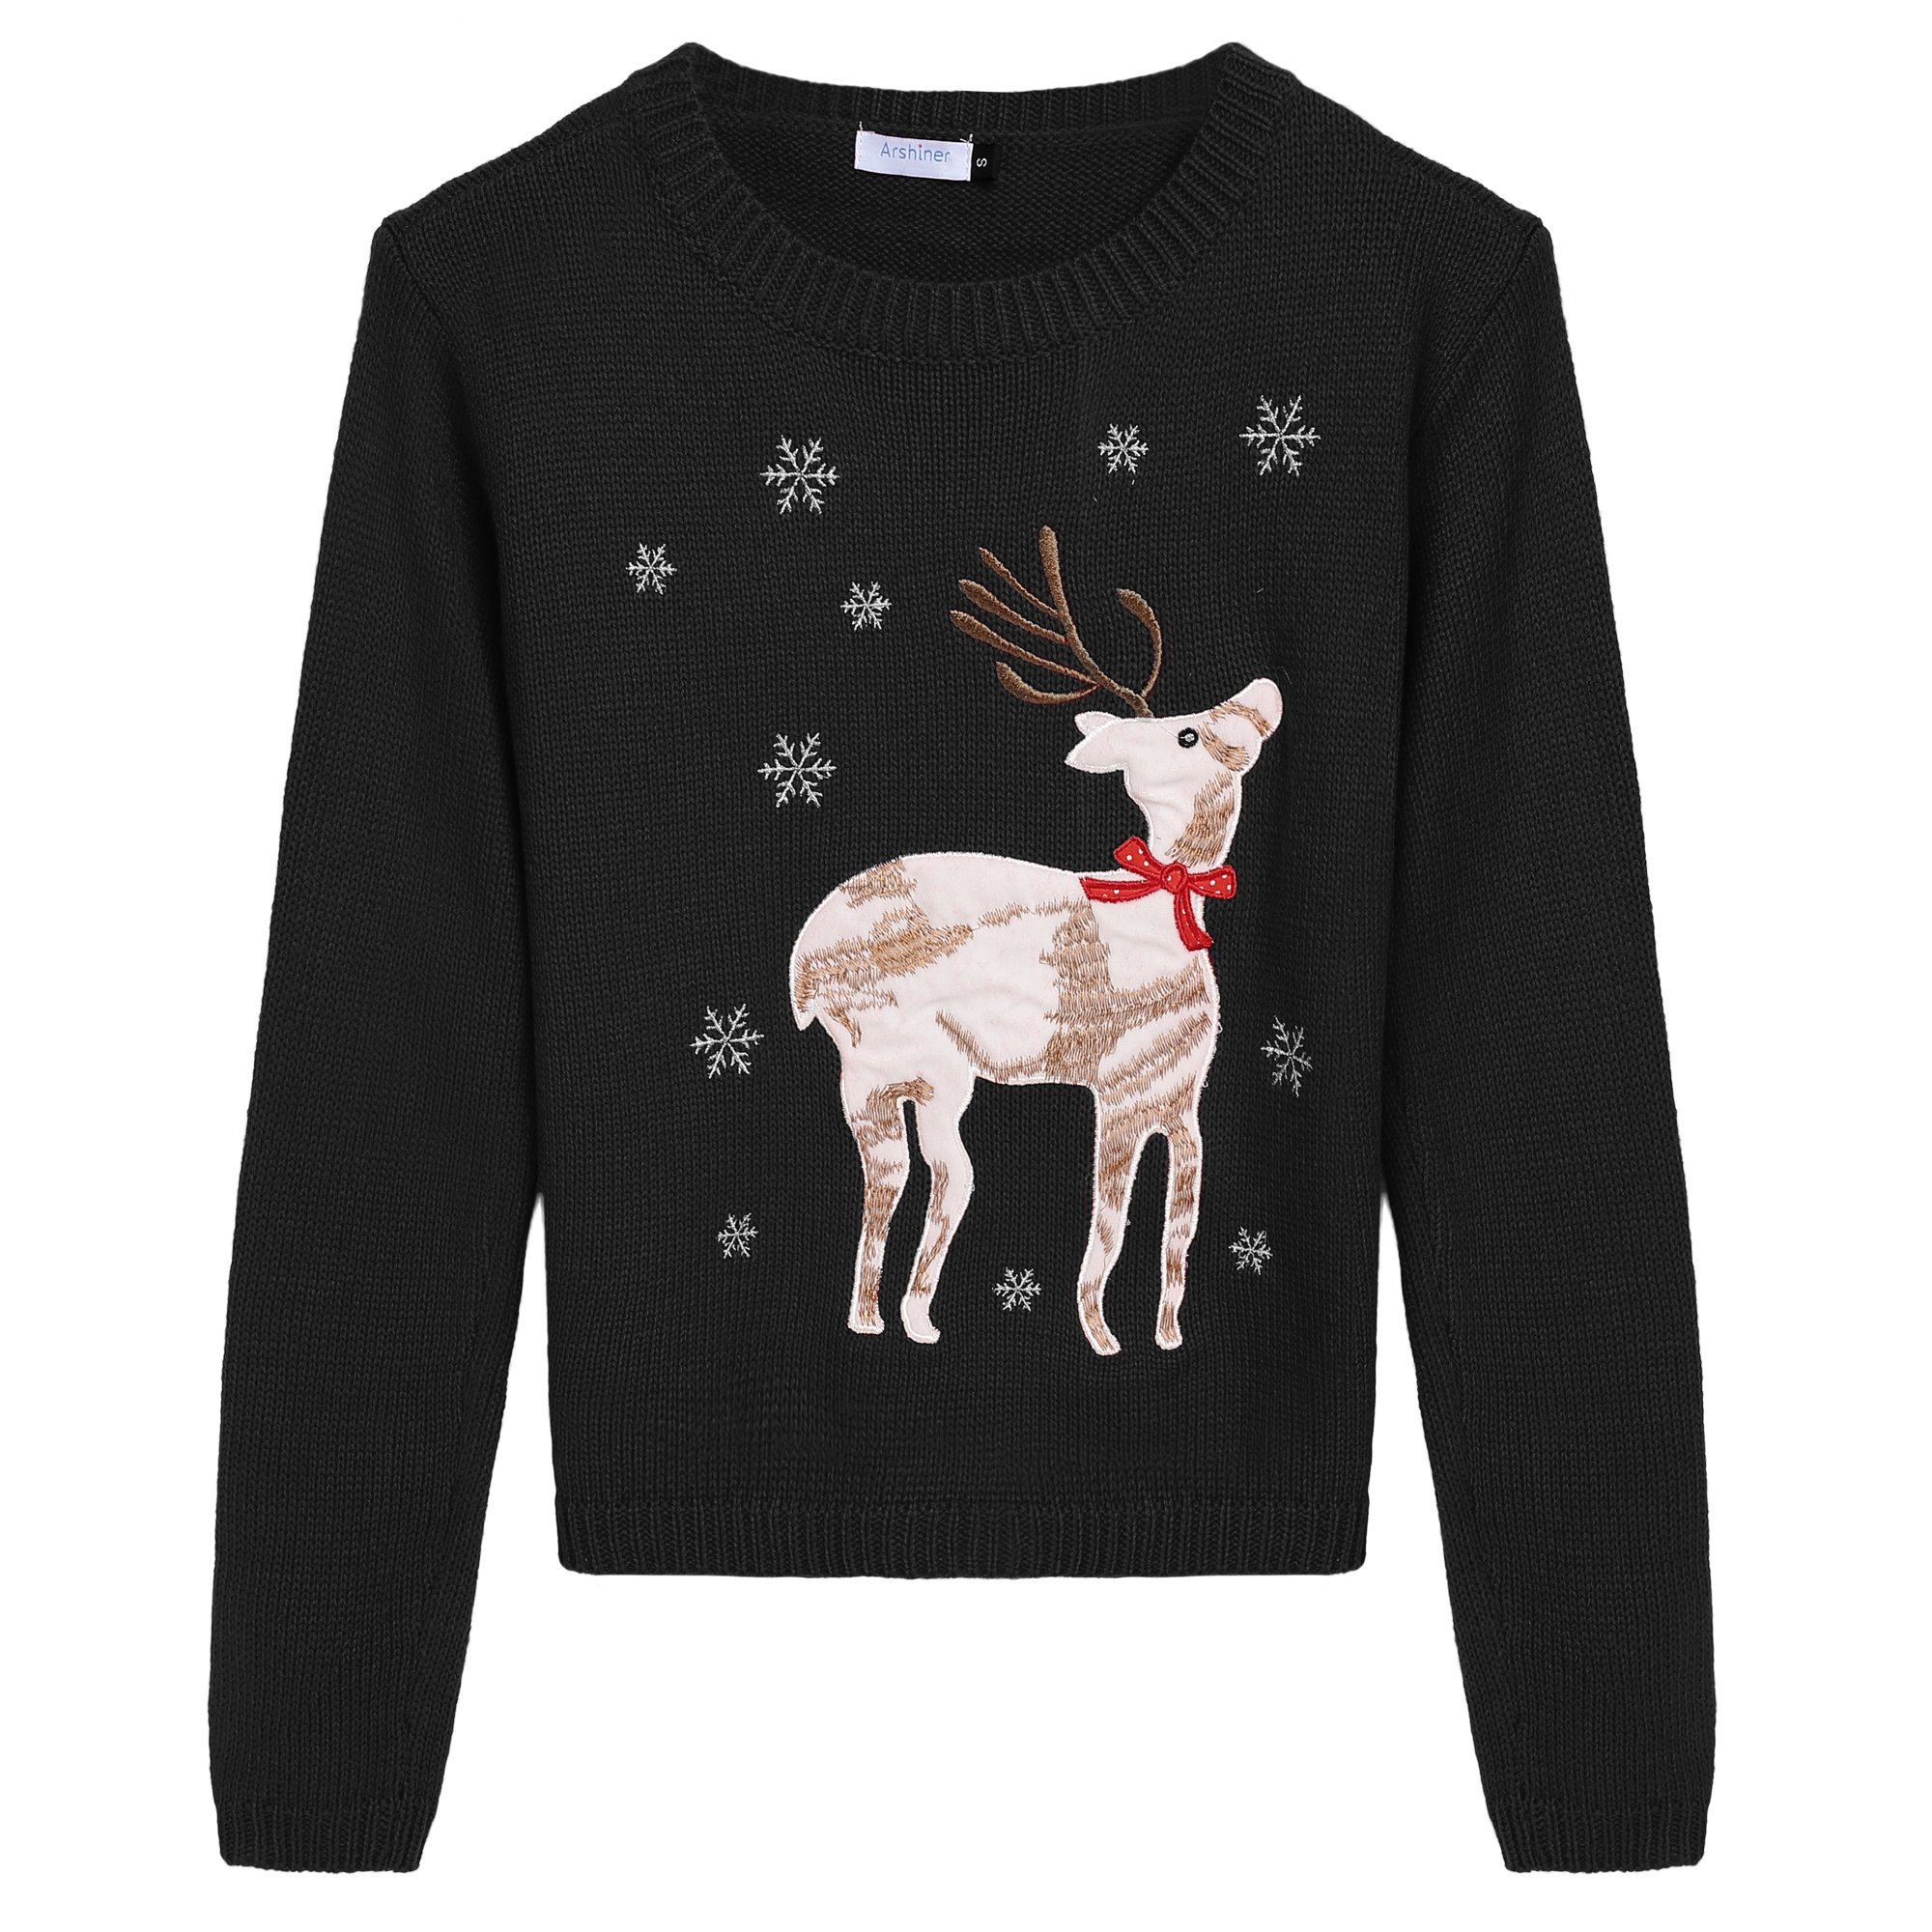 Arshiner Girl Christmas Cute Deer and Elk Embroidered Knitted Pullover Sweater,Black